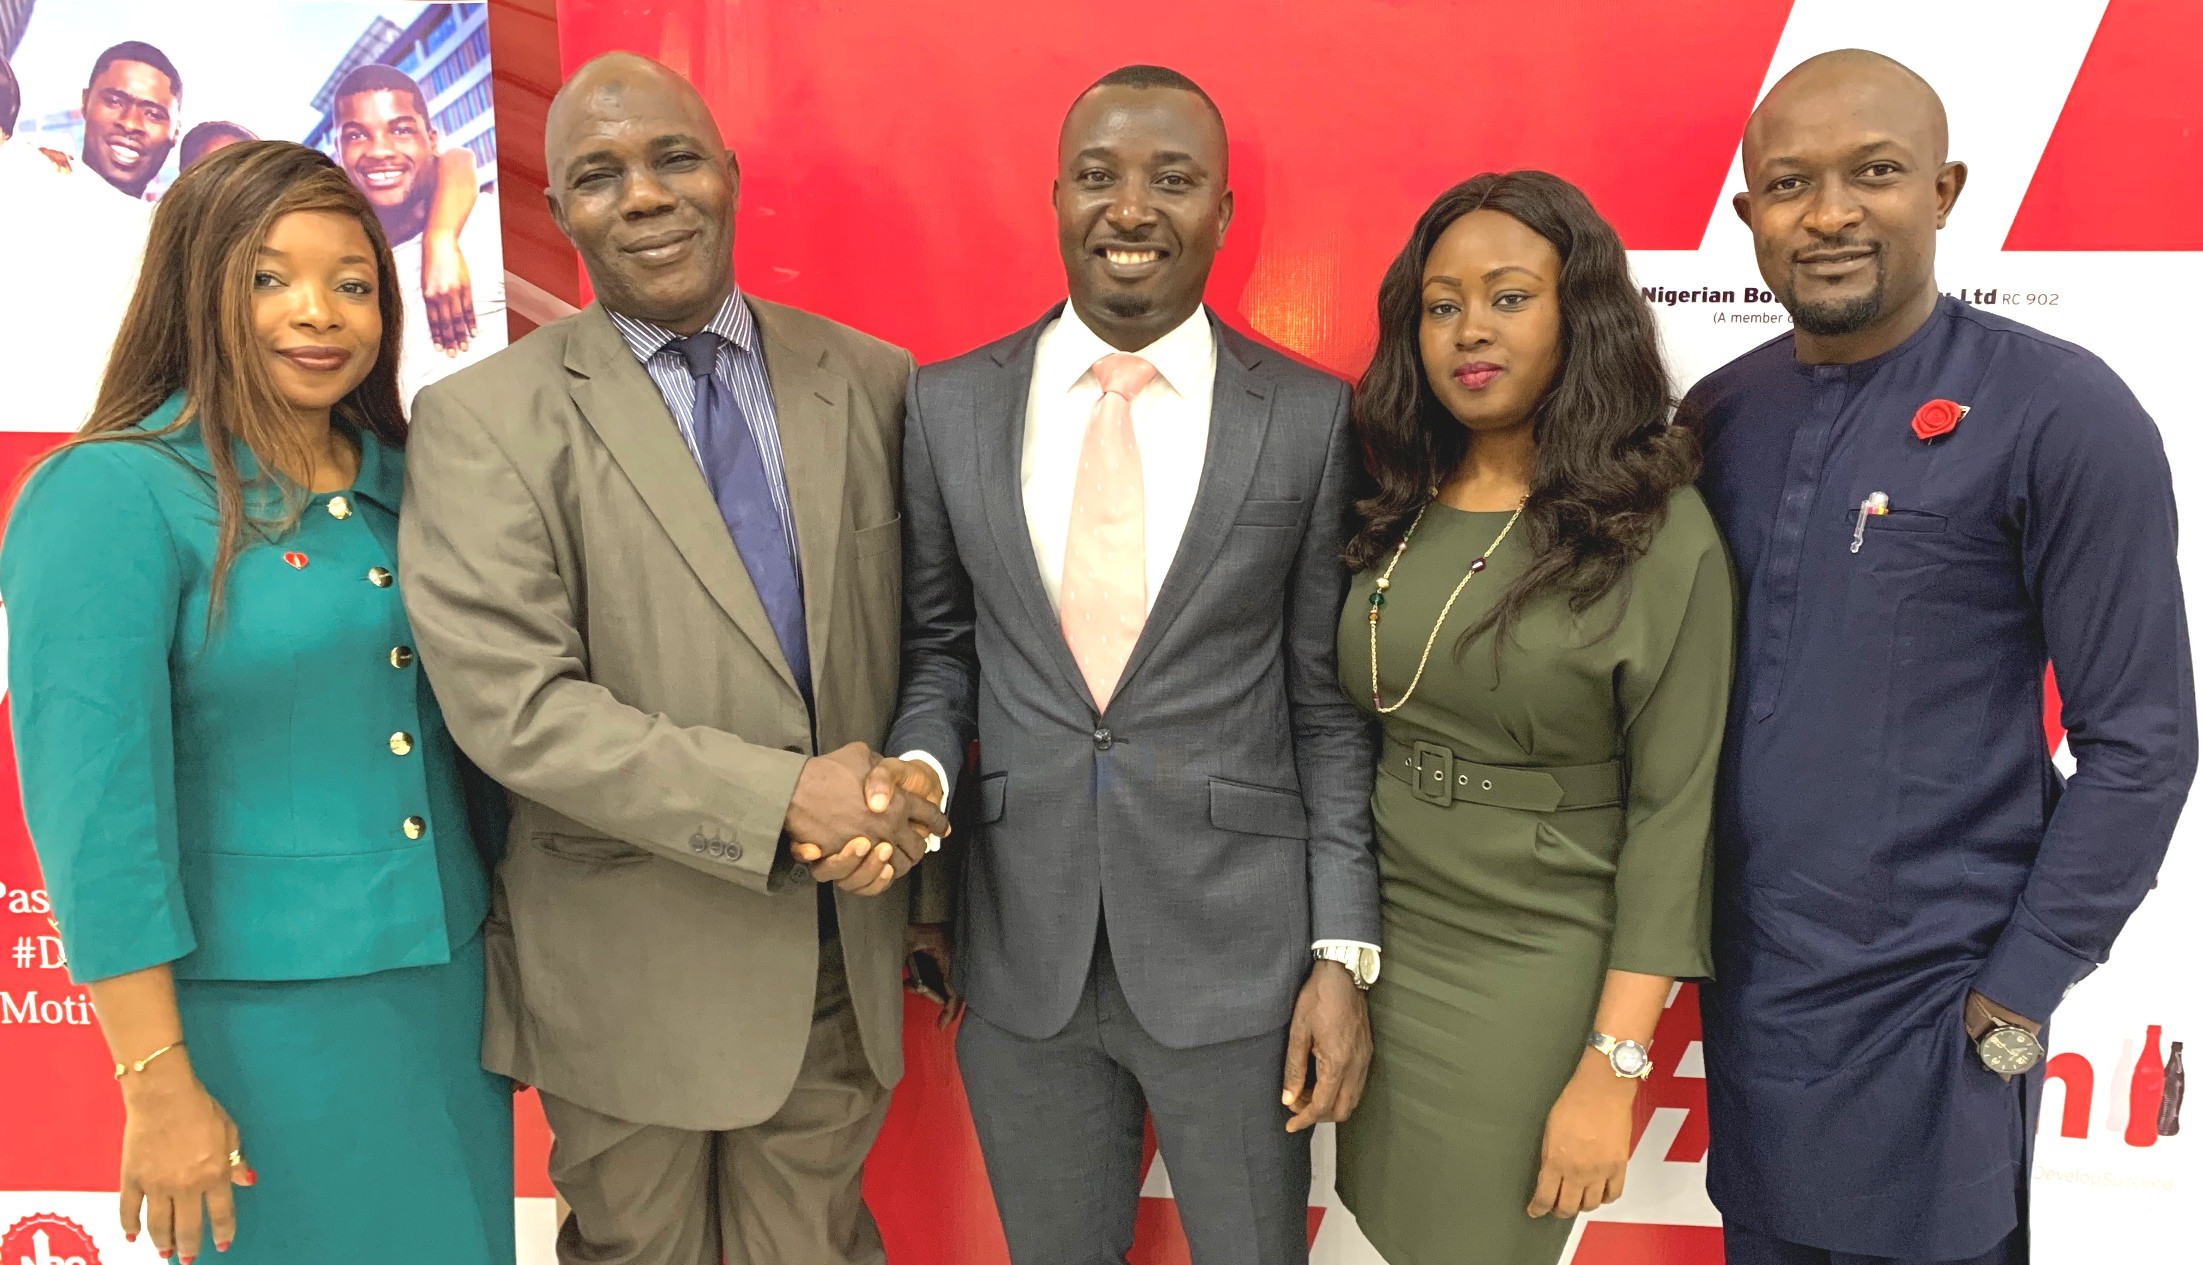 Nigerian Bottling Company thrills Abeokuta Youths with its Youth Empowered Initiative